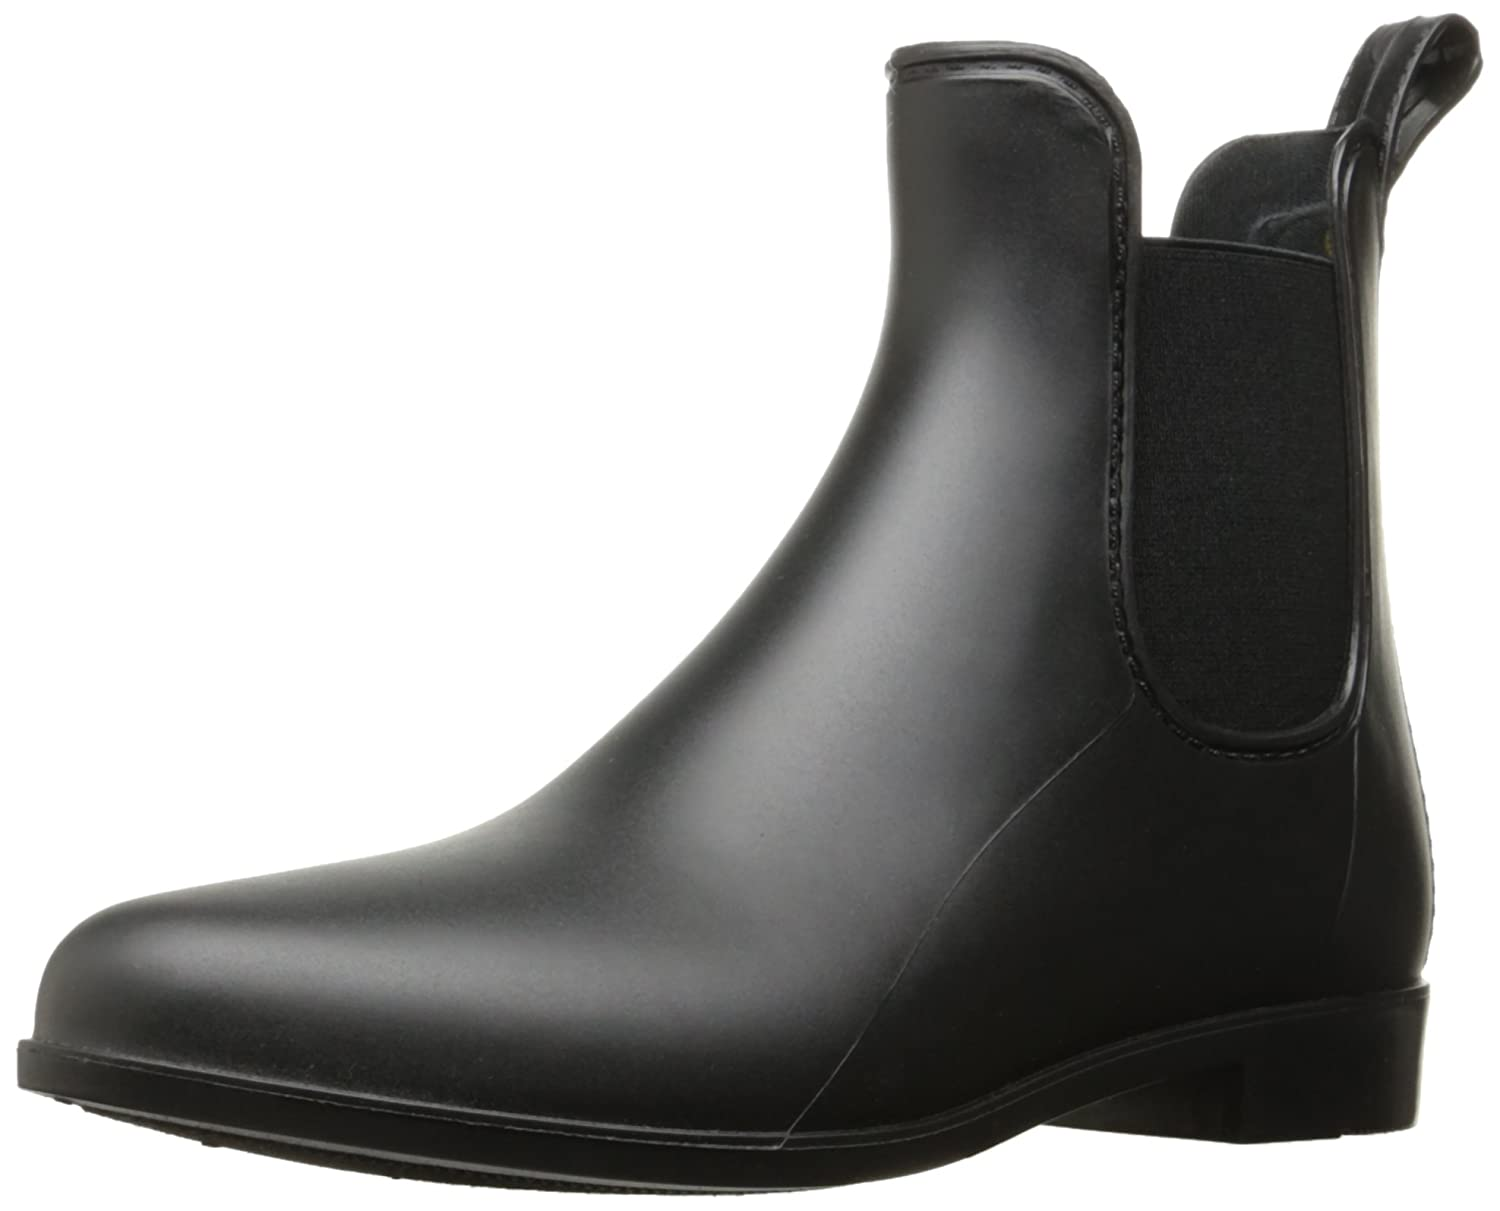 Sam Edelman Women's Tinsley Rain Boot B01MRKIO26 8 W US|Black Matte